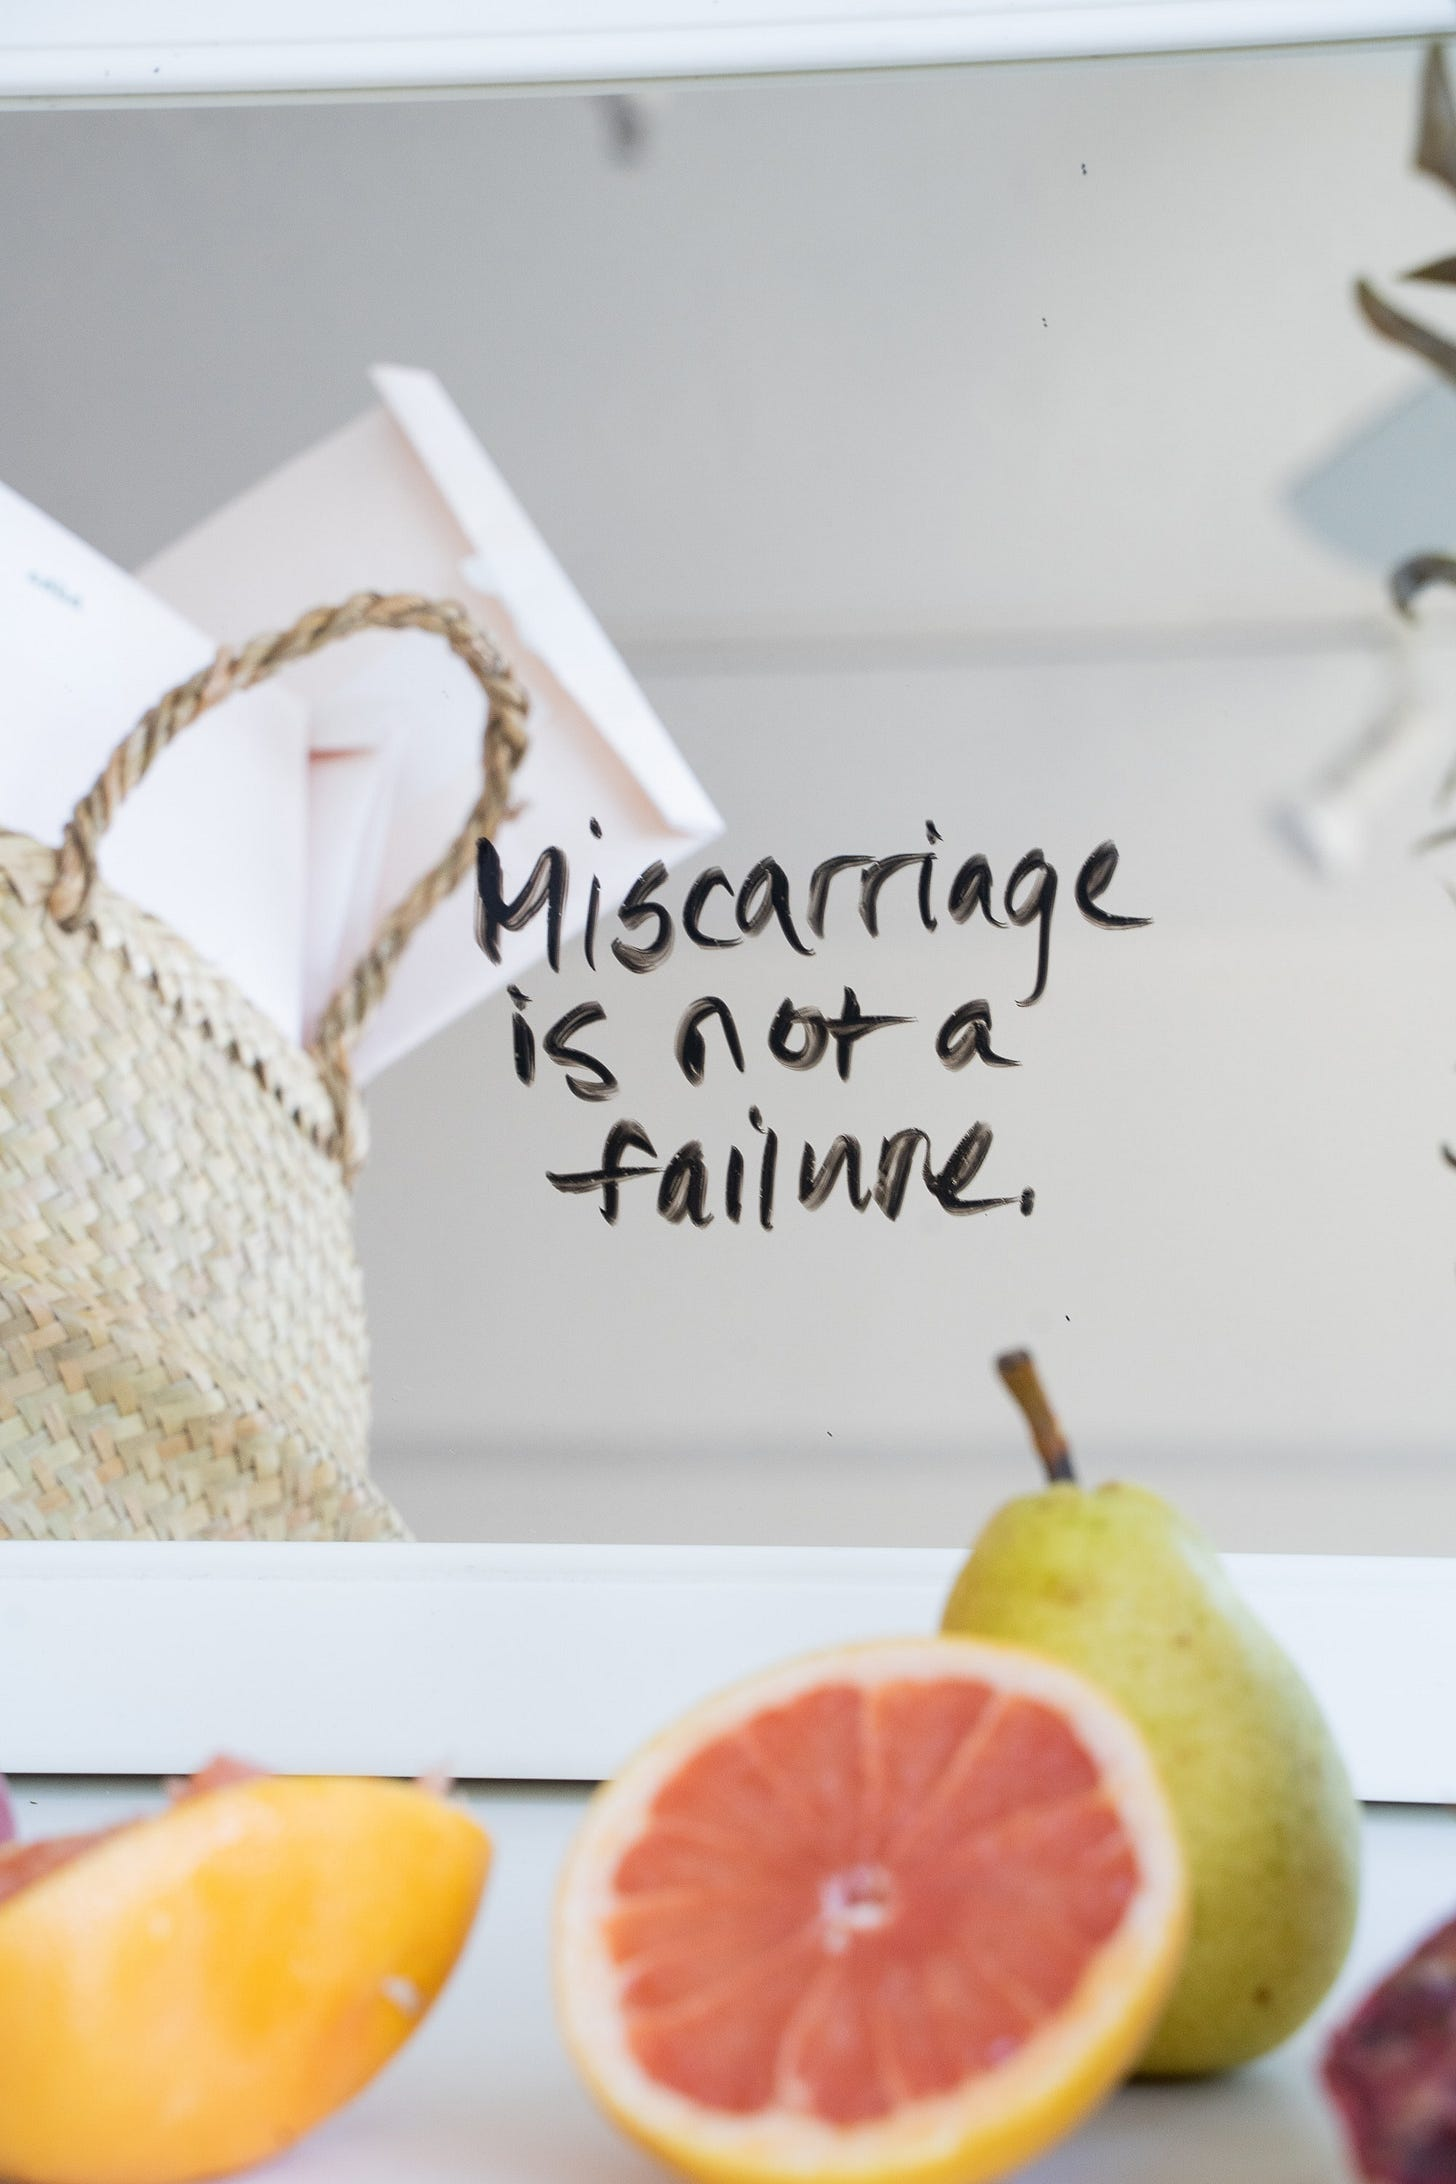 """half grapefruit and a pear on a counter top with the words """"Miscarriage is not a failure"""" written over top"""